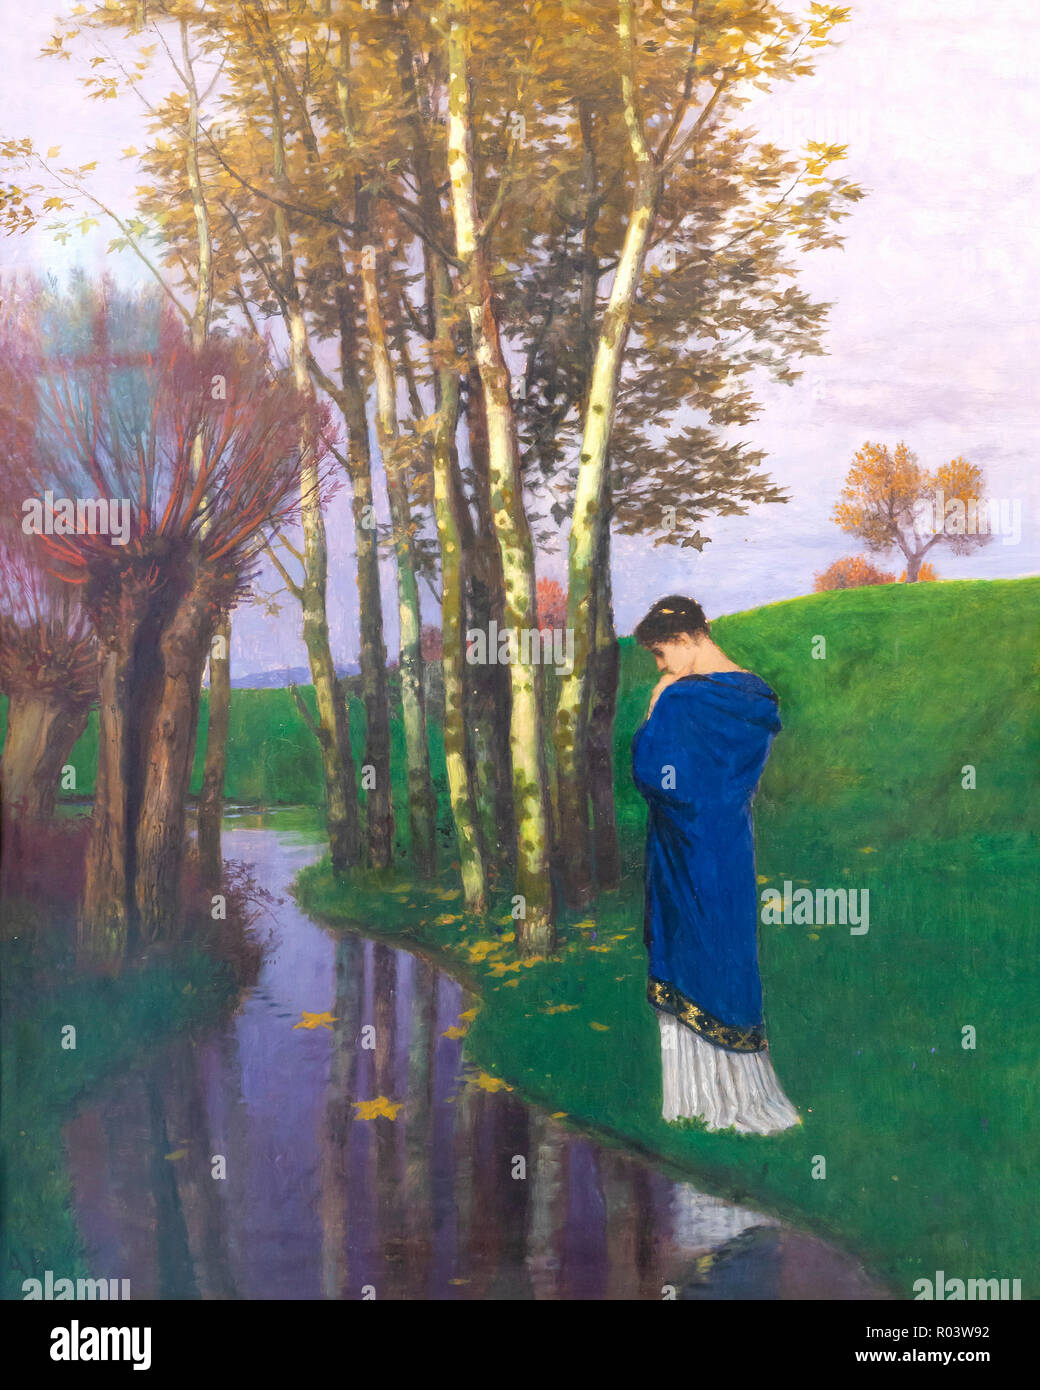 Autumn Thoughts, Arnold Bocklin, 1886, Zurich Kunsthaus, Zurich, Switzerland, Europe - Stock Image